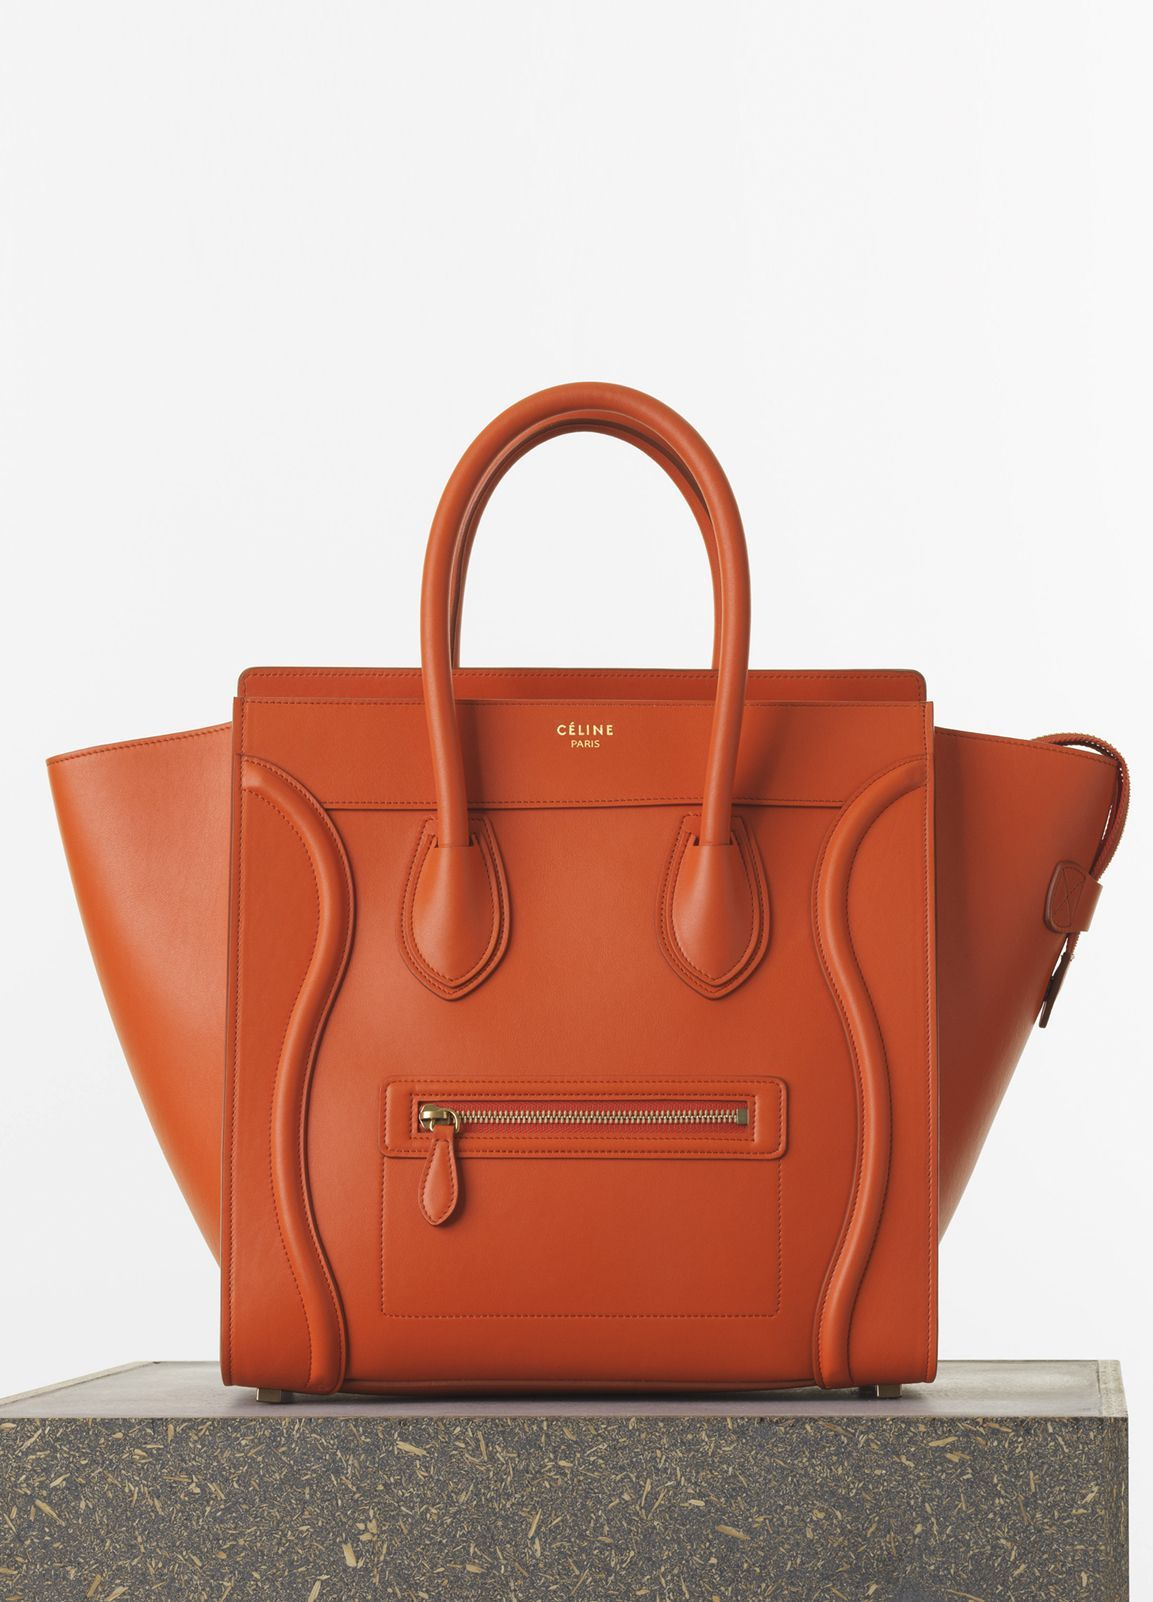 042a1da470 MINI LUGGAGE HANDBAG IN BURNT ORANGE SMOOTH CALFSKIN 30 X 30 X 17 CM (12 X  12 X 7 IN) CALFSKIN AND LAMBSKIN LINING 165213HSC.20BT 2.100 EUR